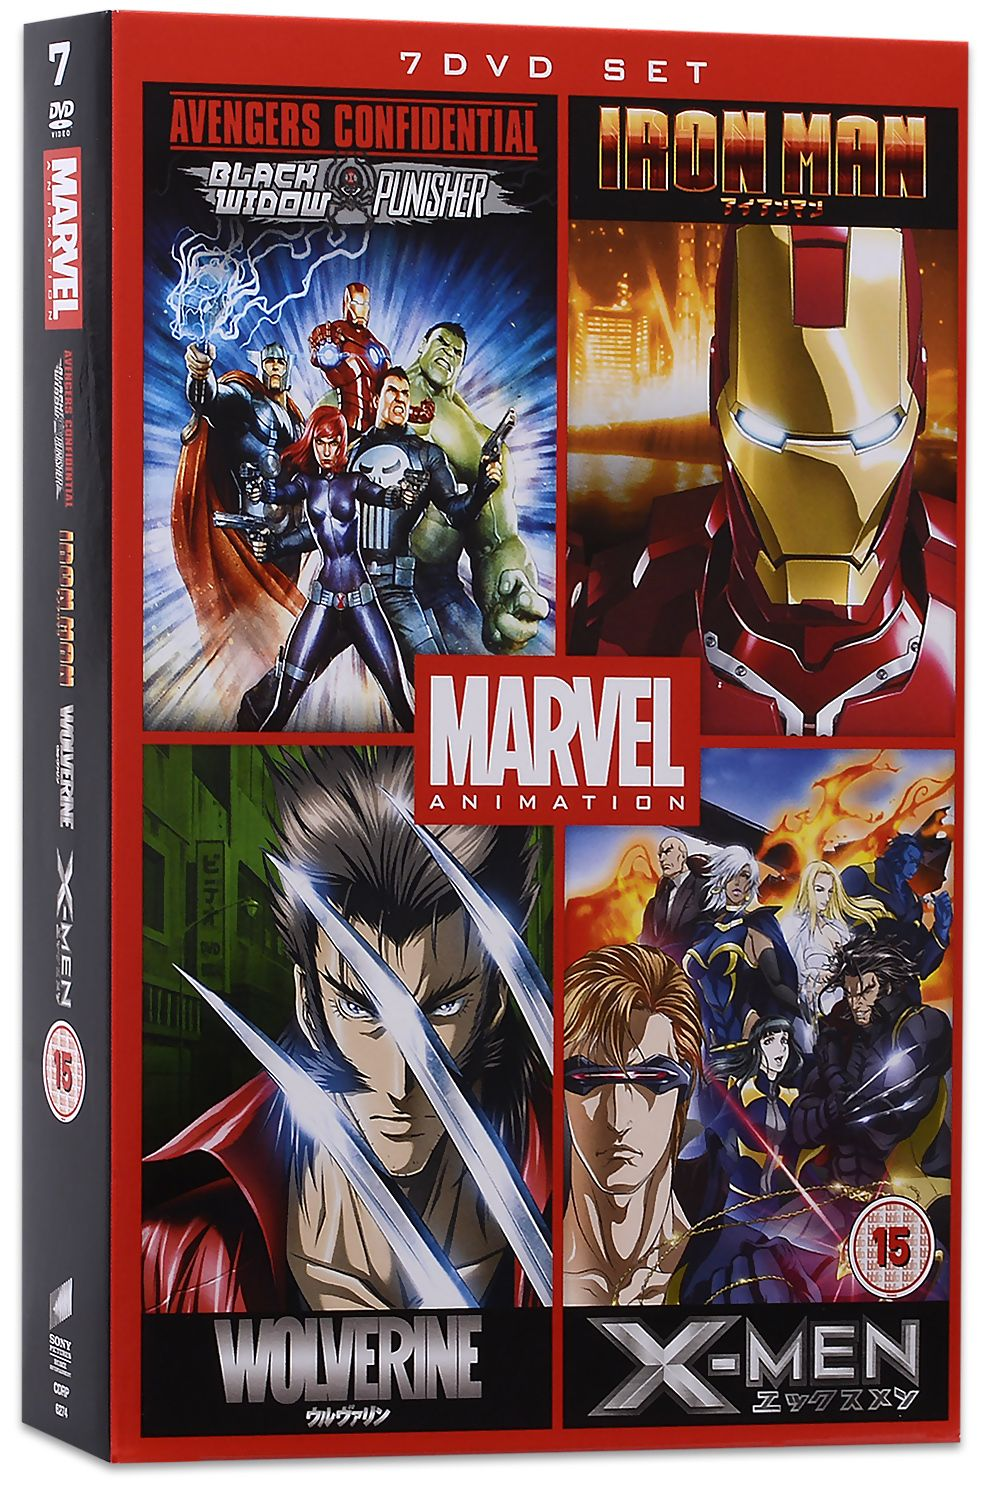 Marvel Anime Collection (DVD) - 2